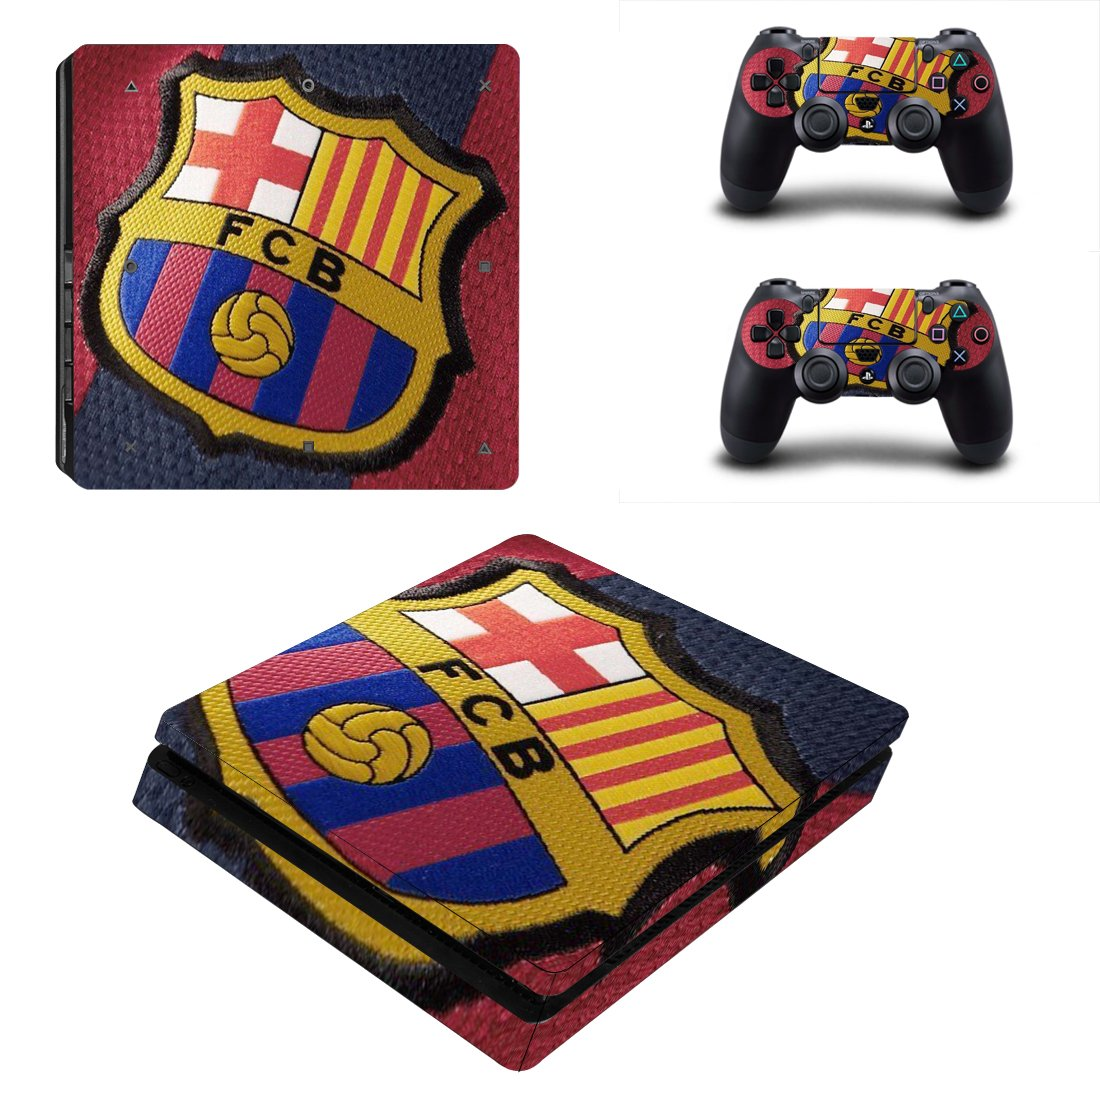 Barcelona PS4 Slim Skin Sticker Wrap